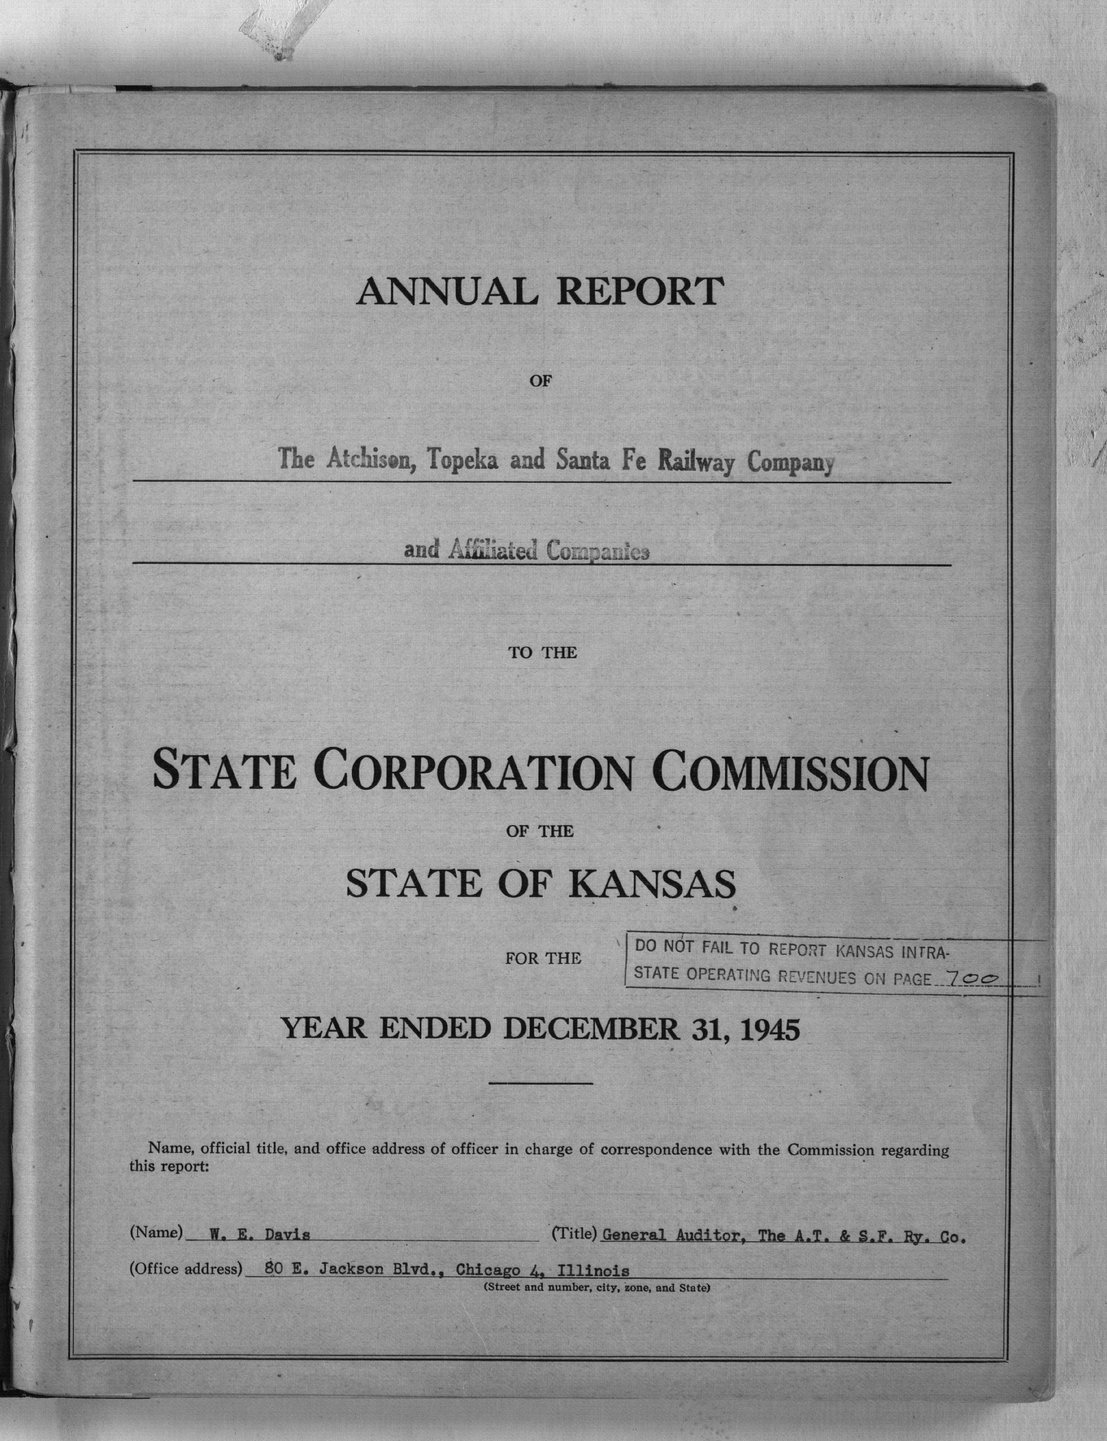 Annual reports of the Atchison, Topeka & Santa Fe Railway Company to the State Corporation Commission - Title Page